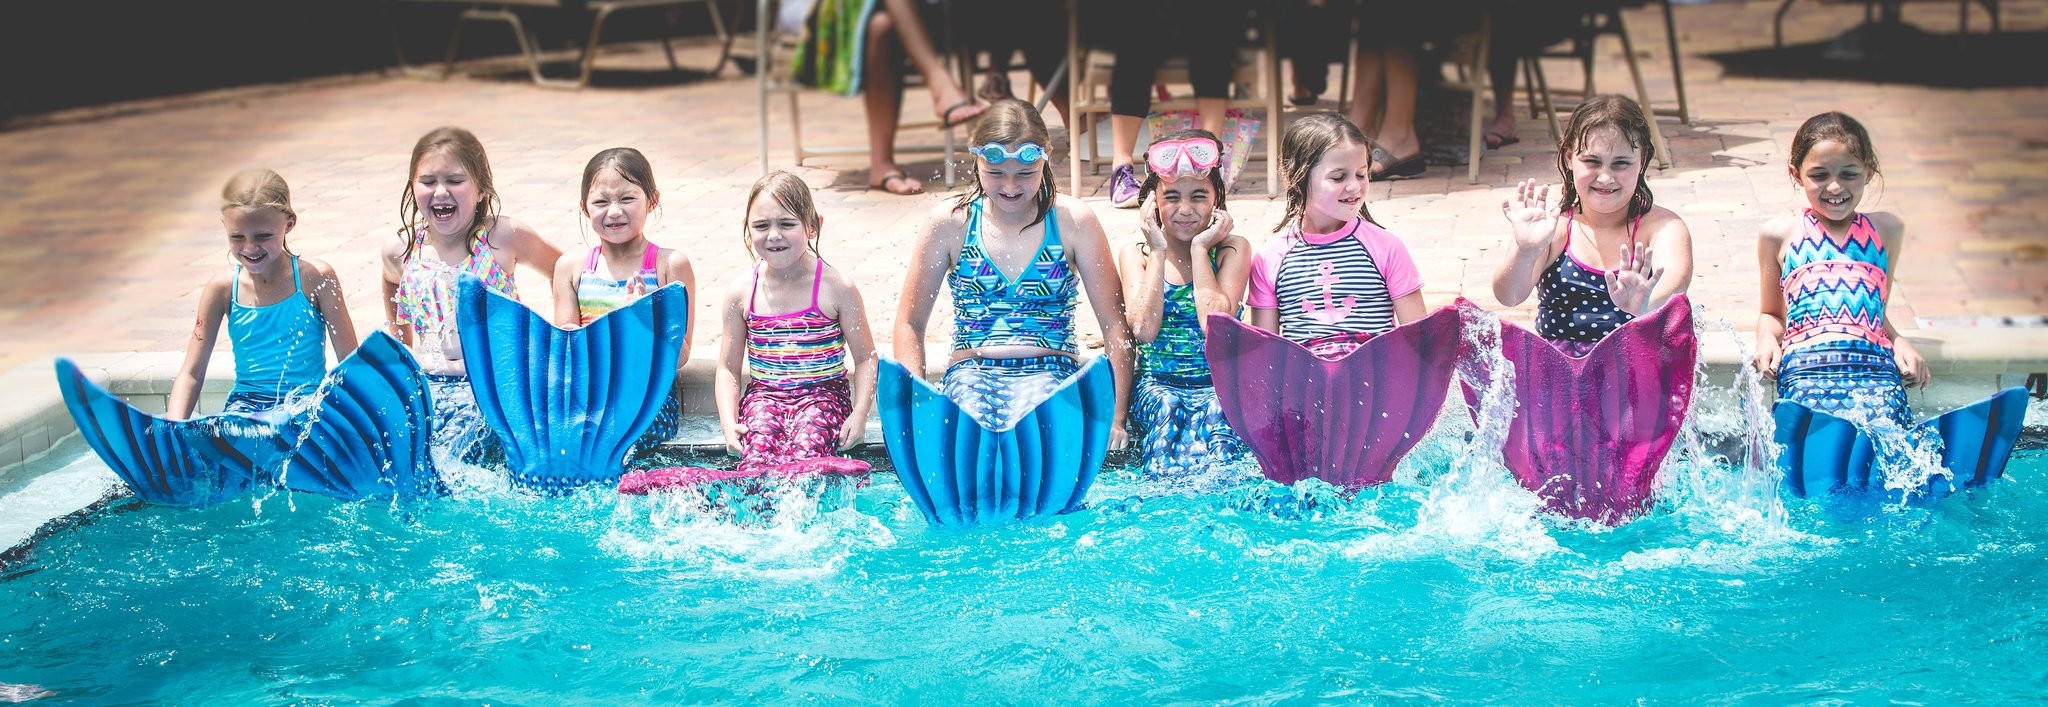 Mermaid Party Ideas 4 Year Old  Mermaid Birthday Party Bachelorette Party and Mermaid for